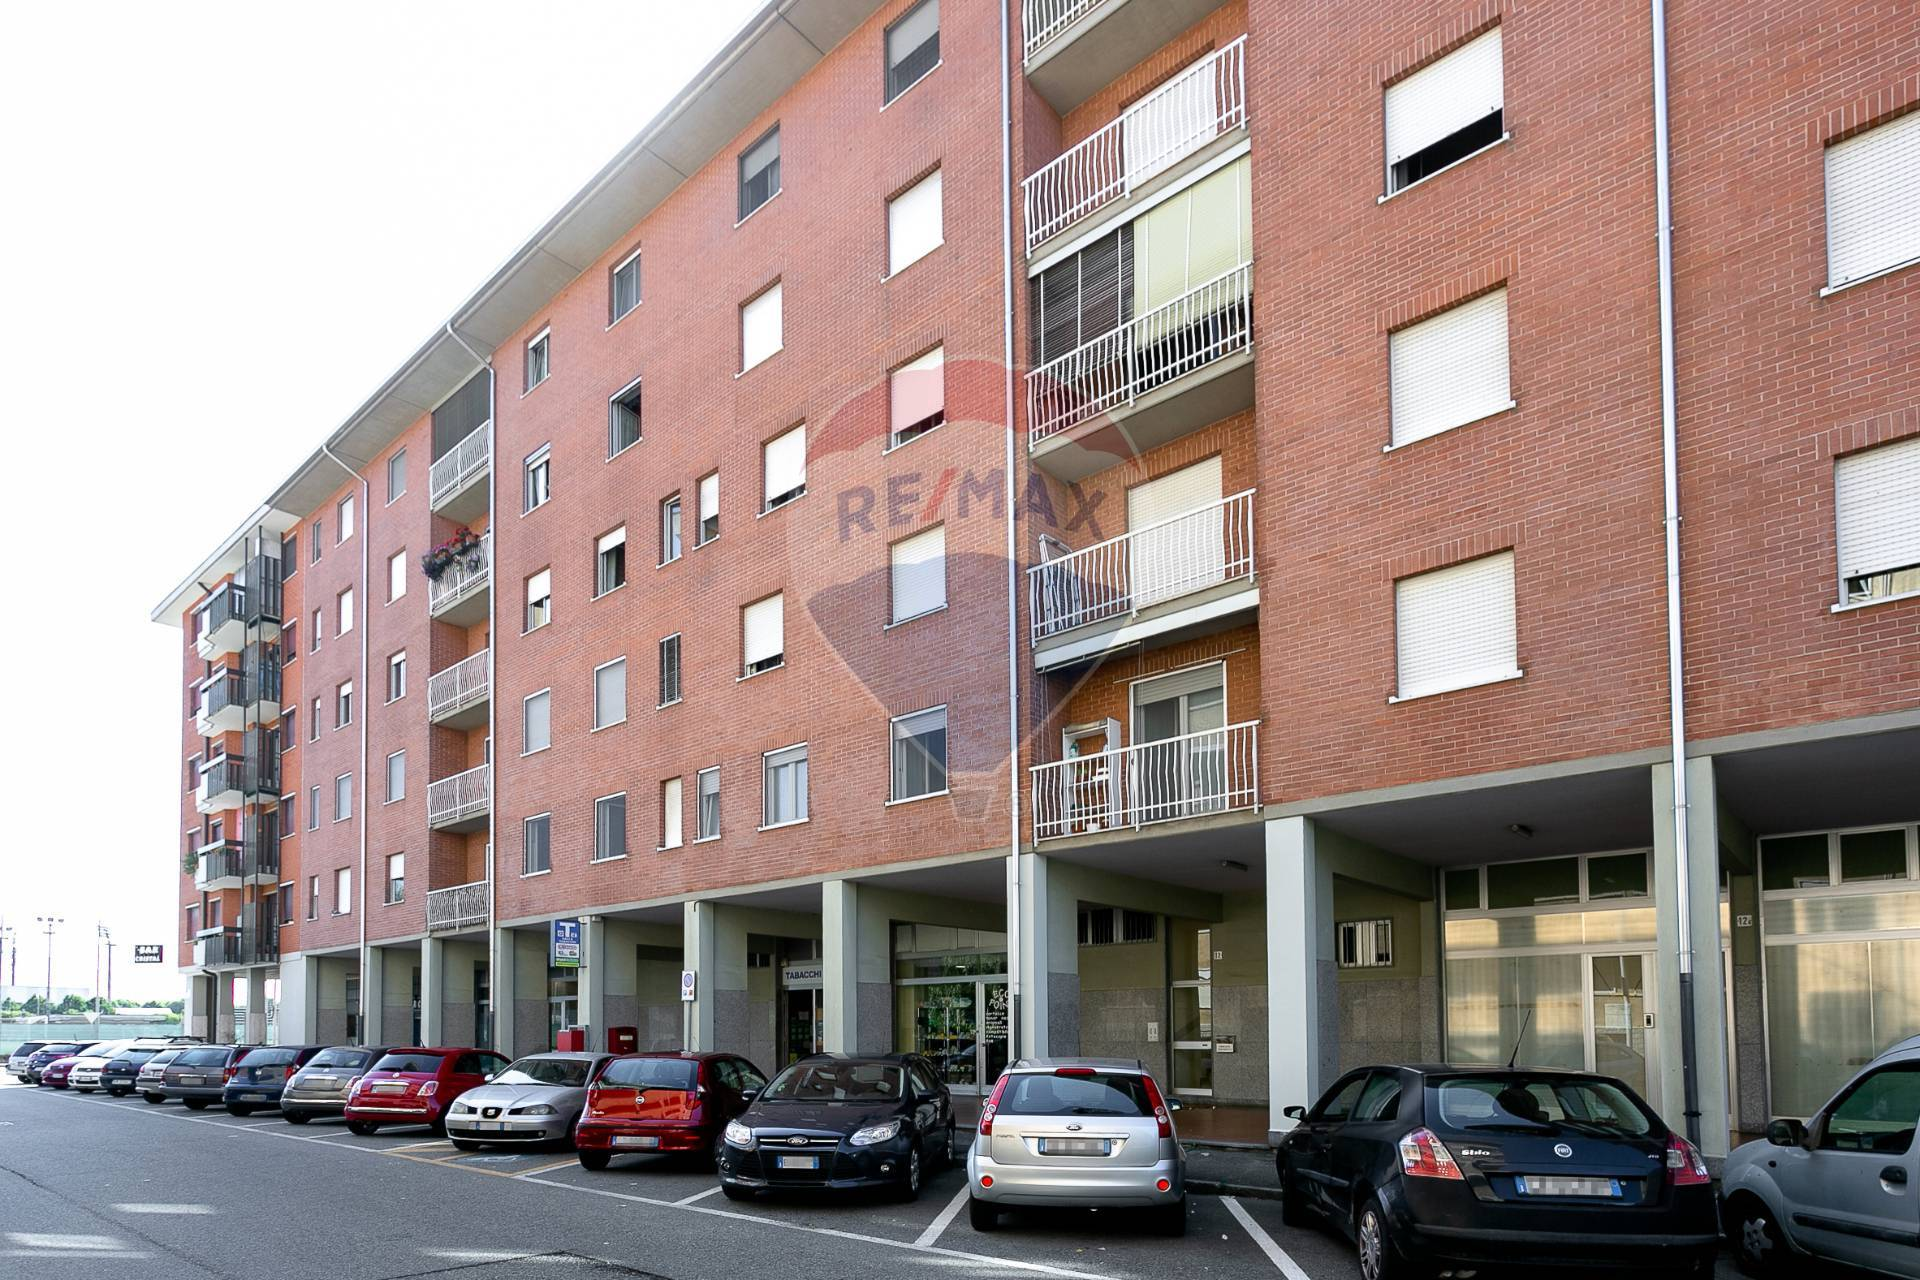 biella vendita quart:  re-max-unit